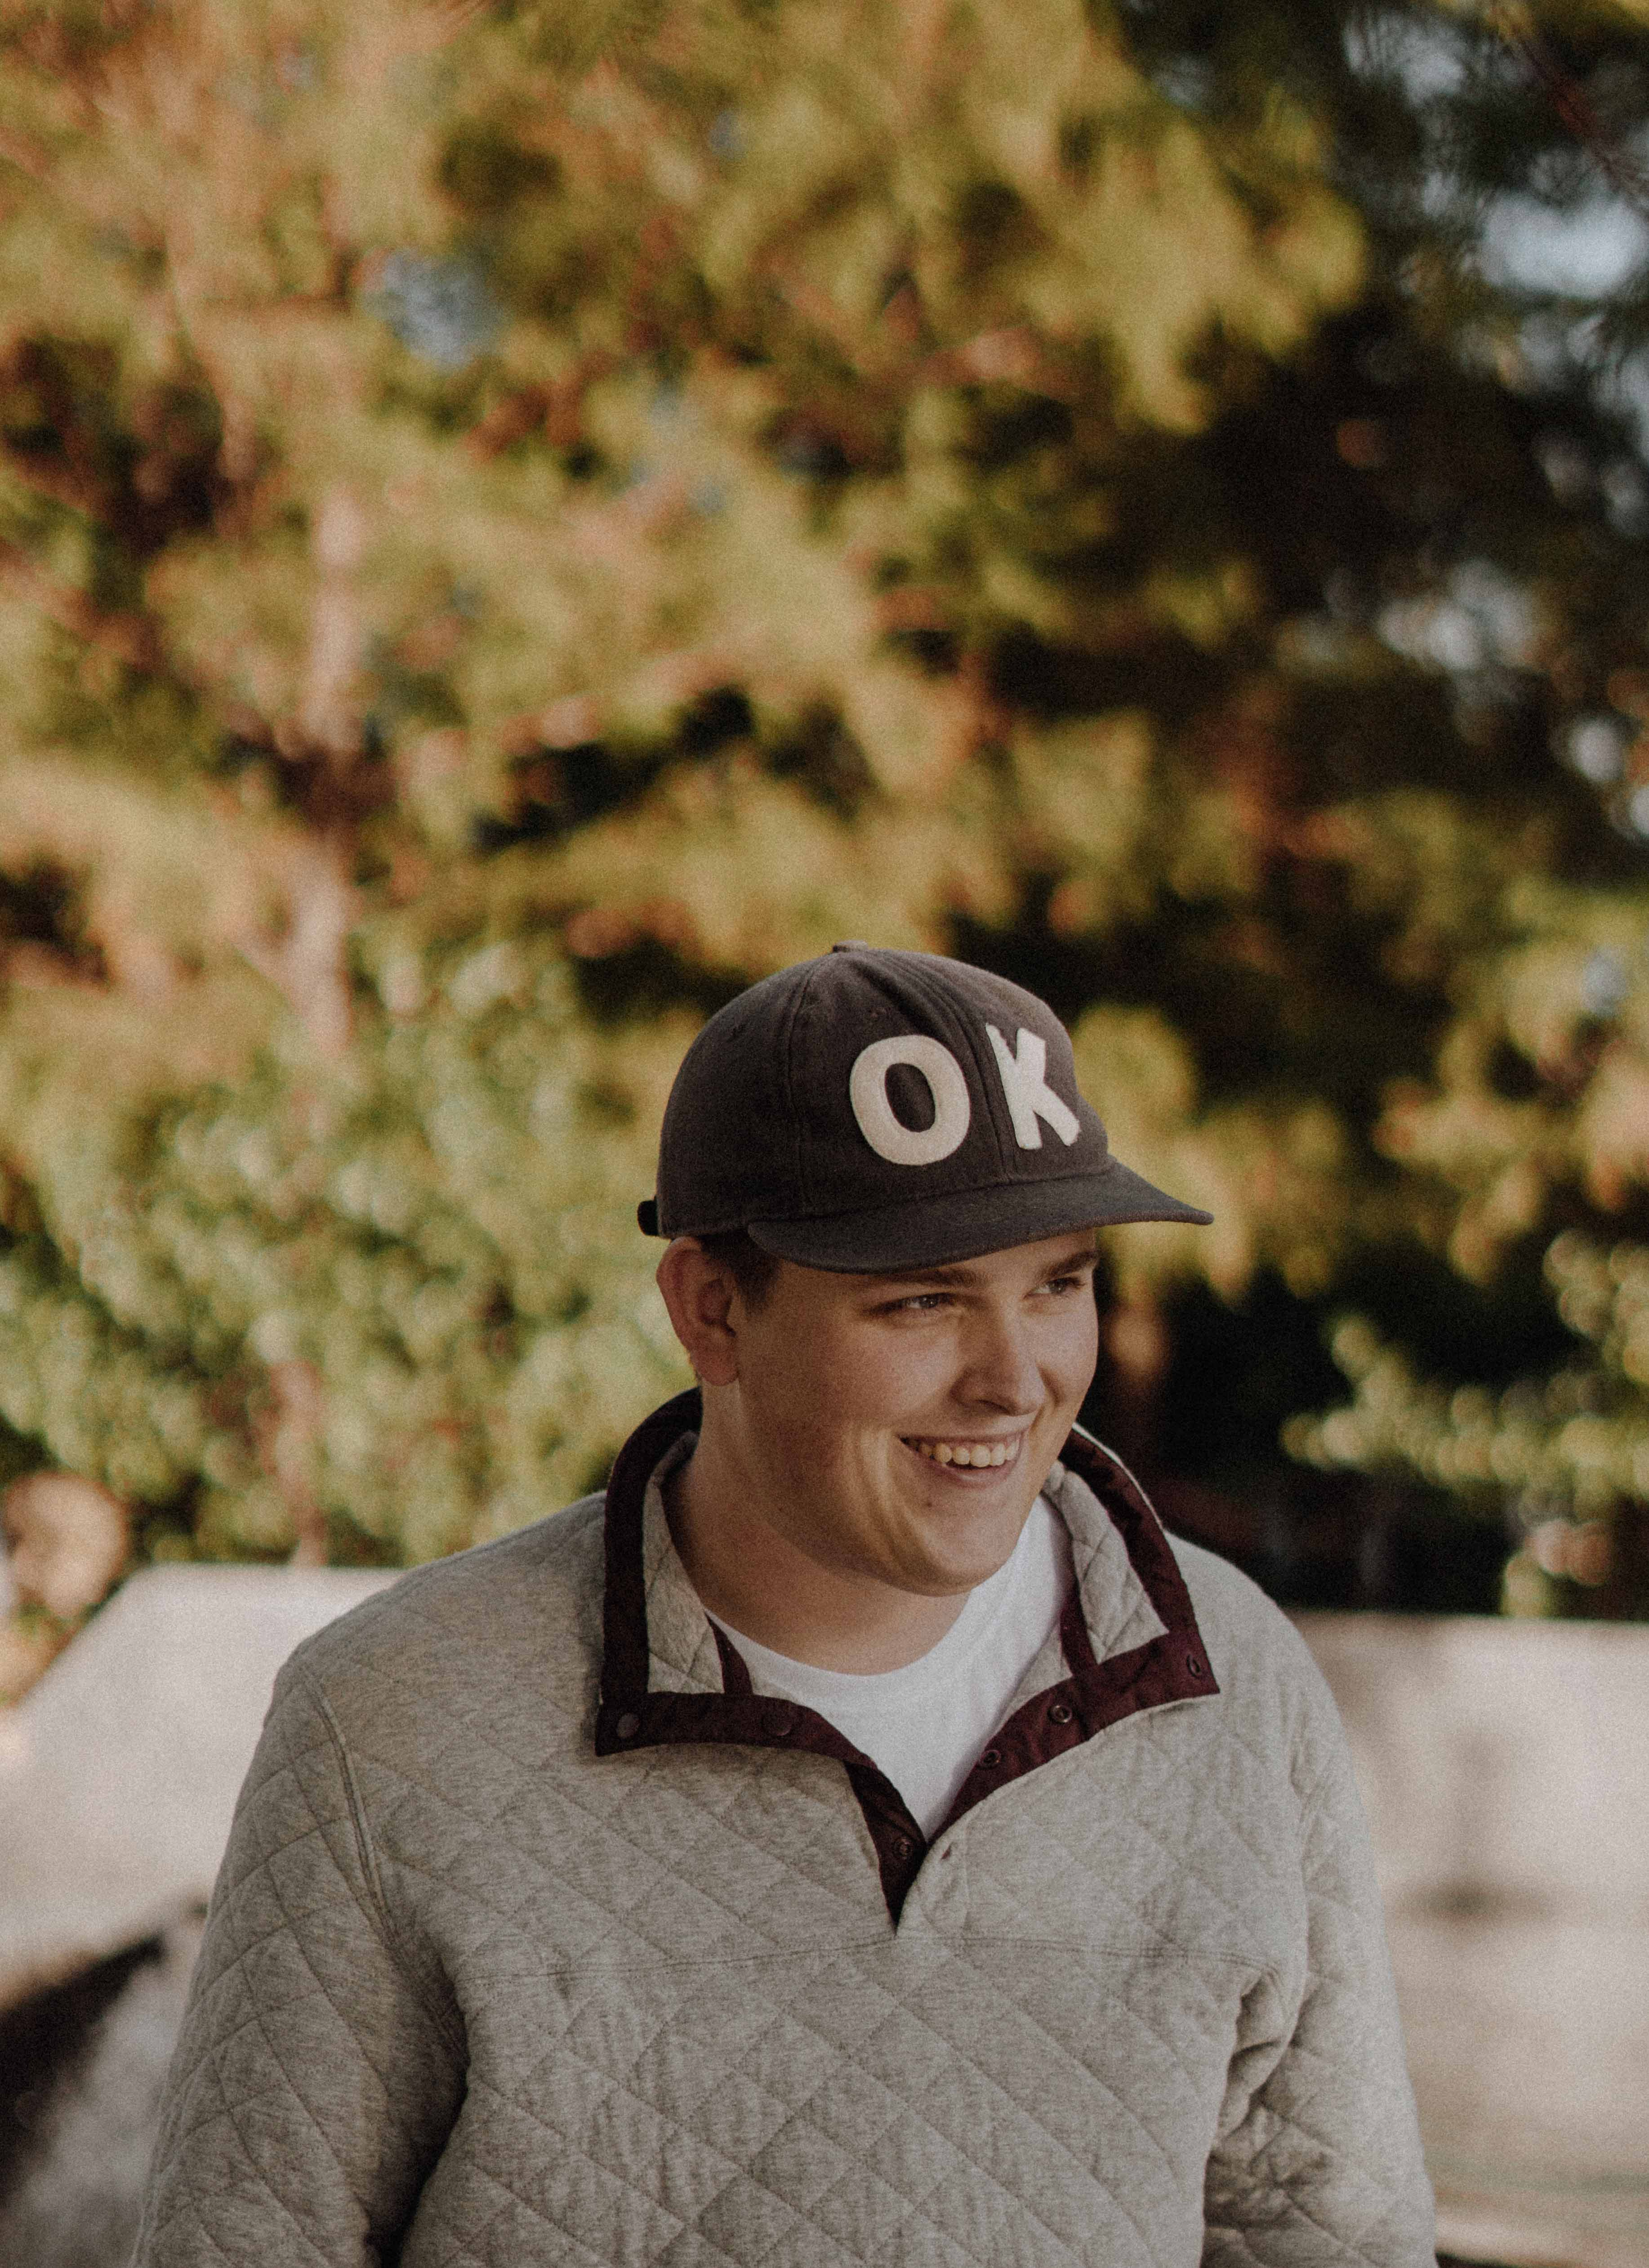 """Happy-go-lucky man with """"OK"""" on his hat"""